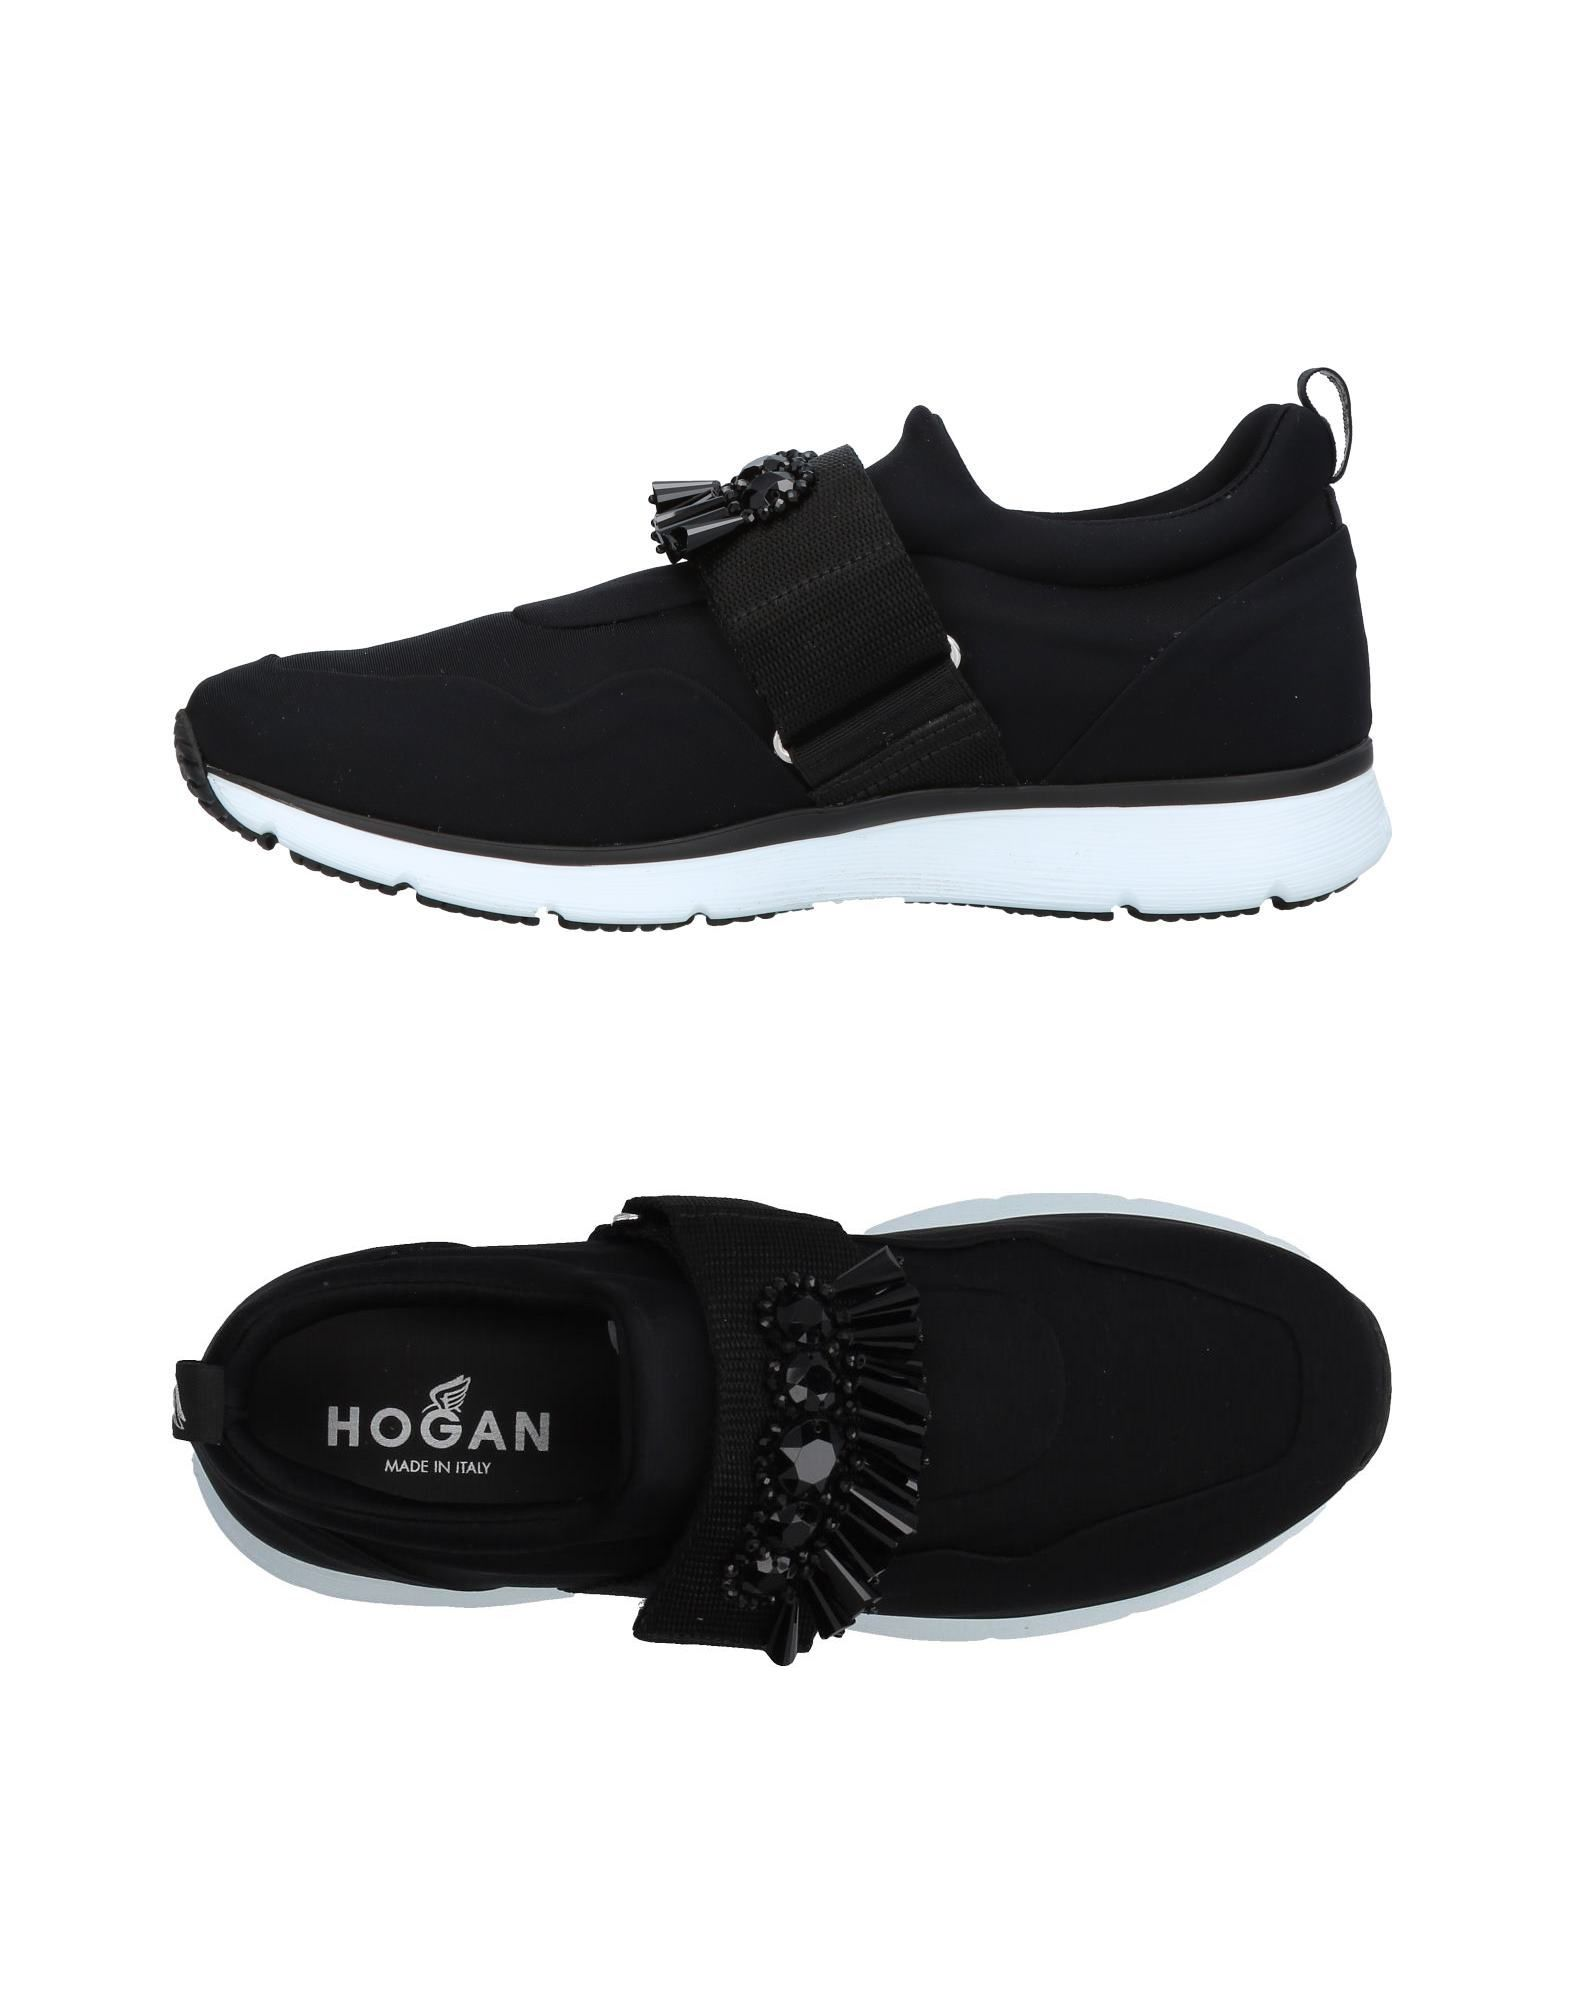 HOGAN | HOGAN Low-tops & sneakers 11392482 | Goxip